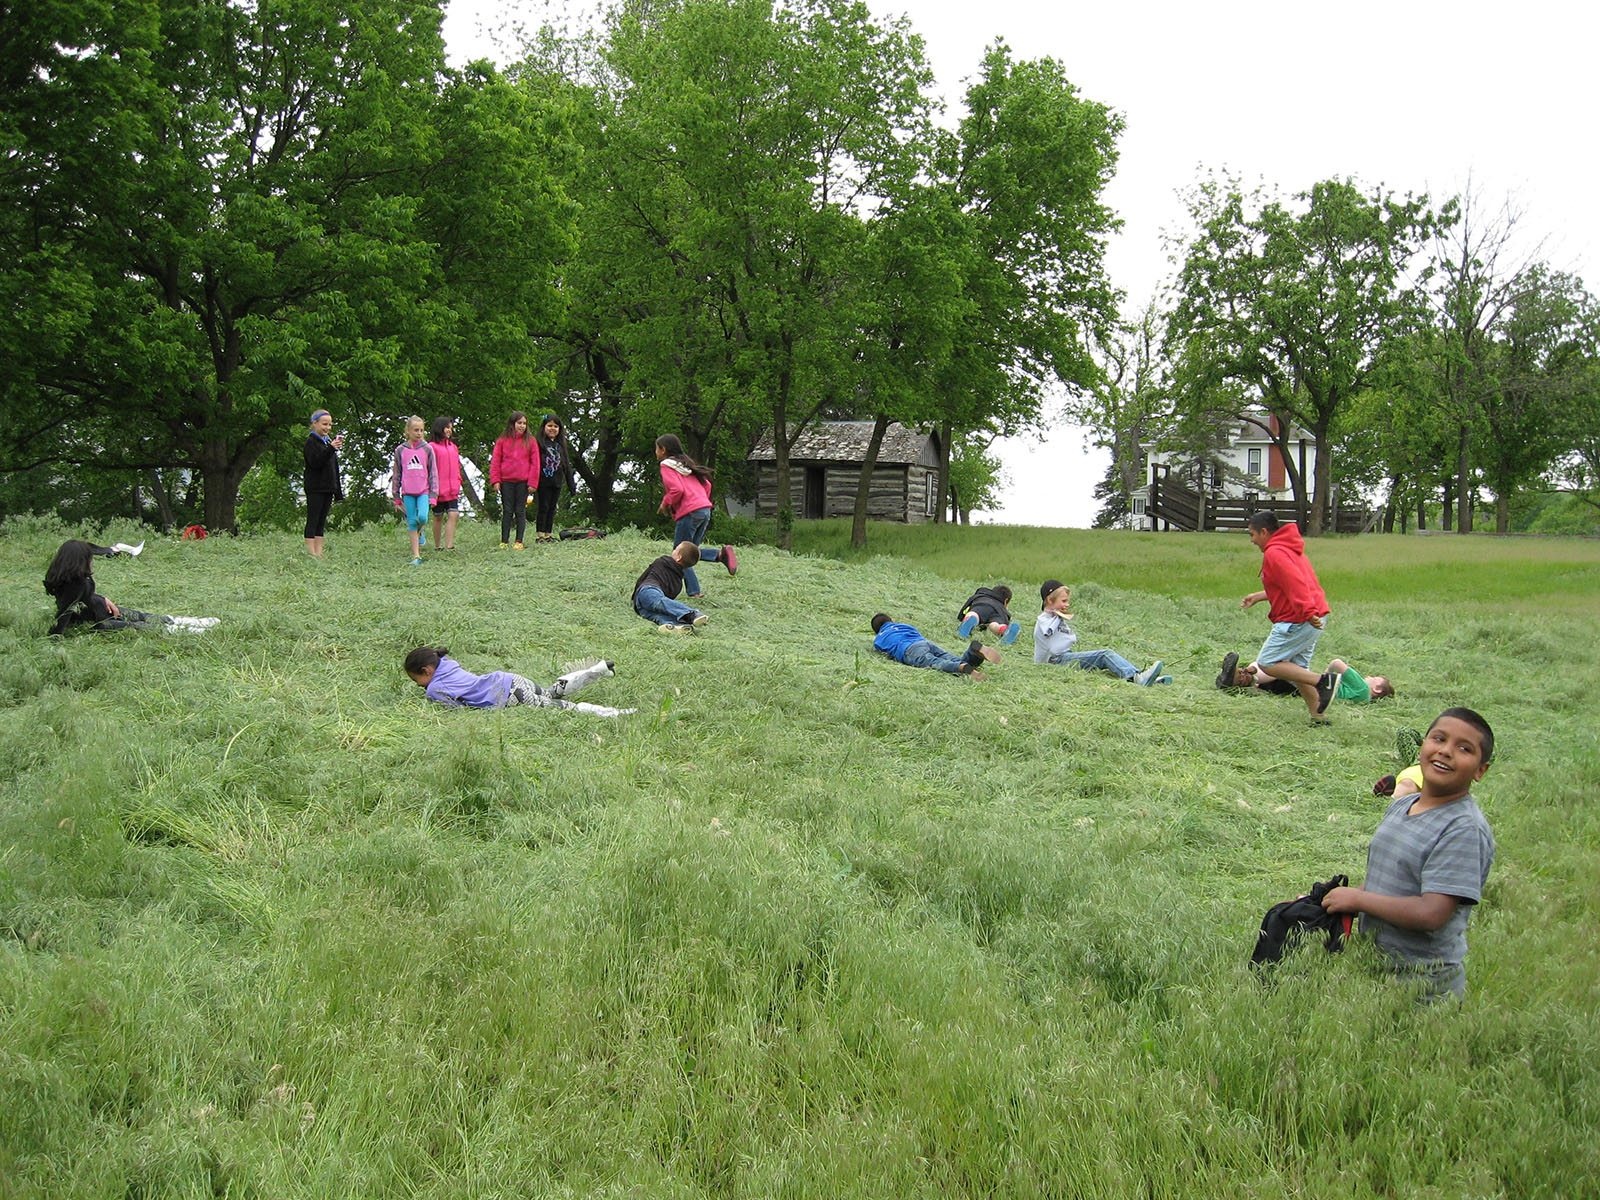 Youth Day at Pioneer Bluffs, children rolling and playing in the grass